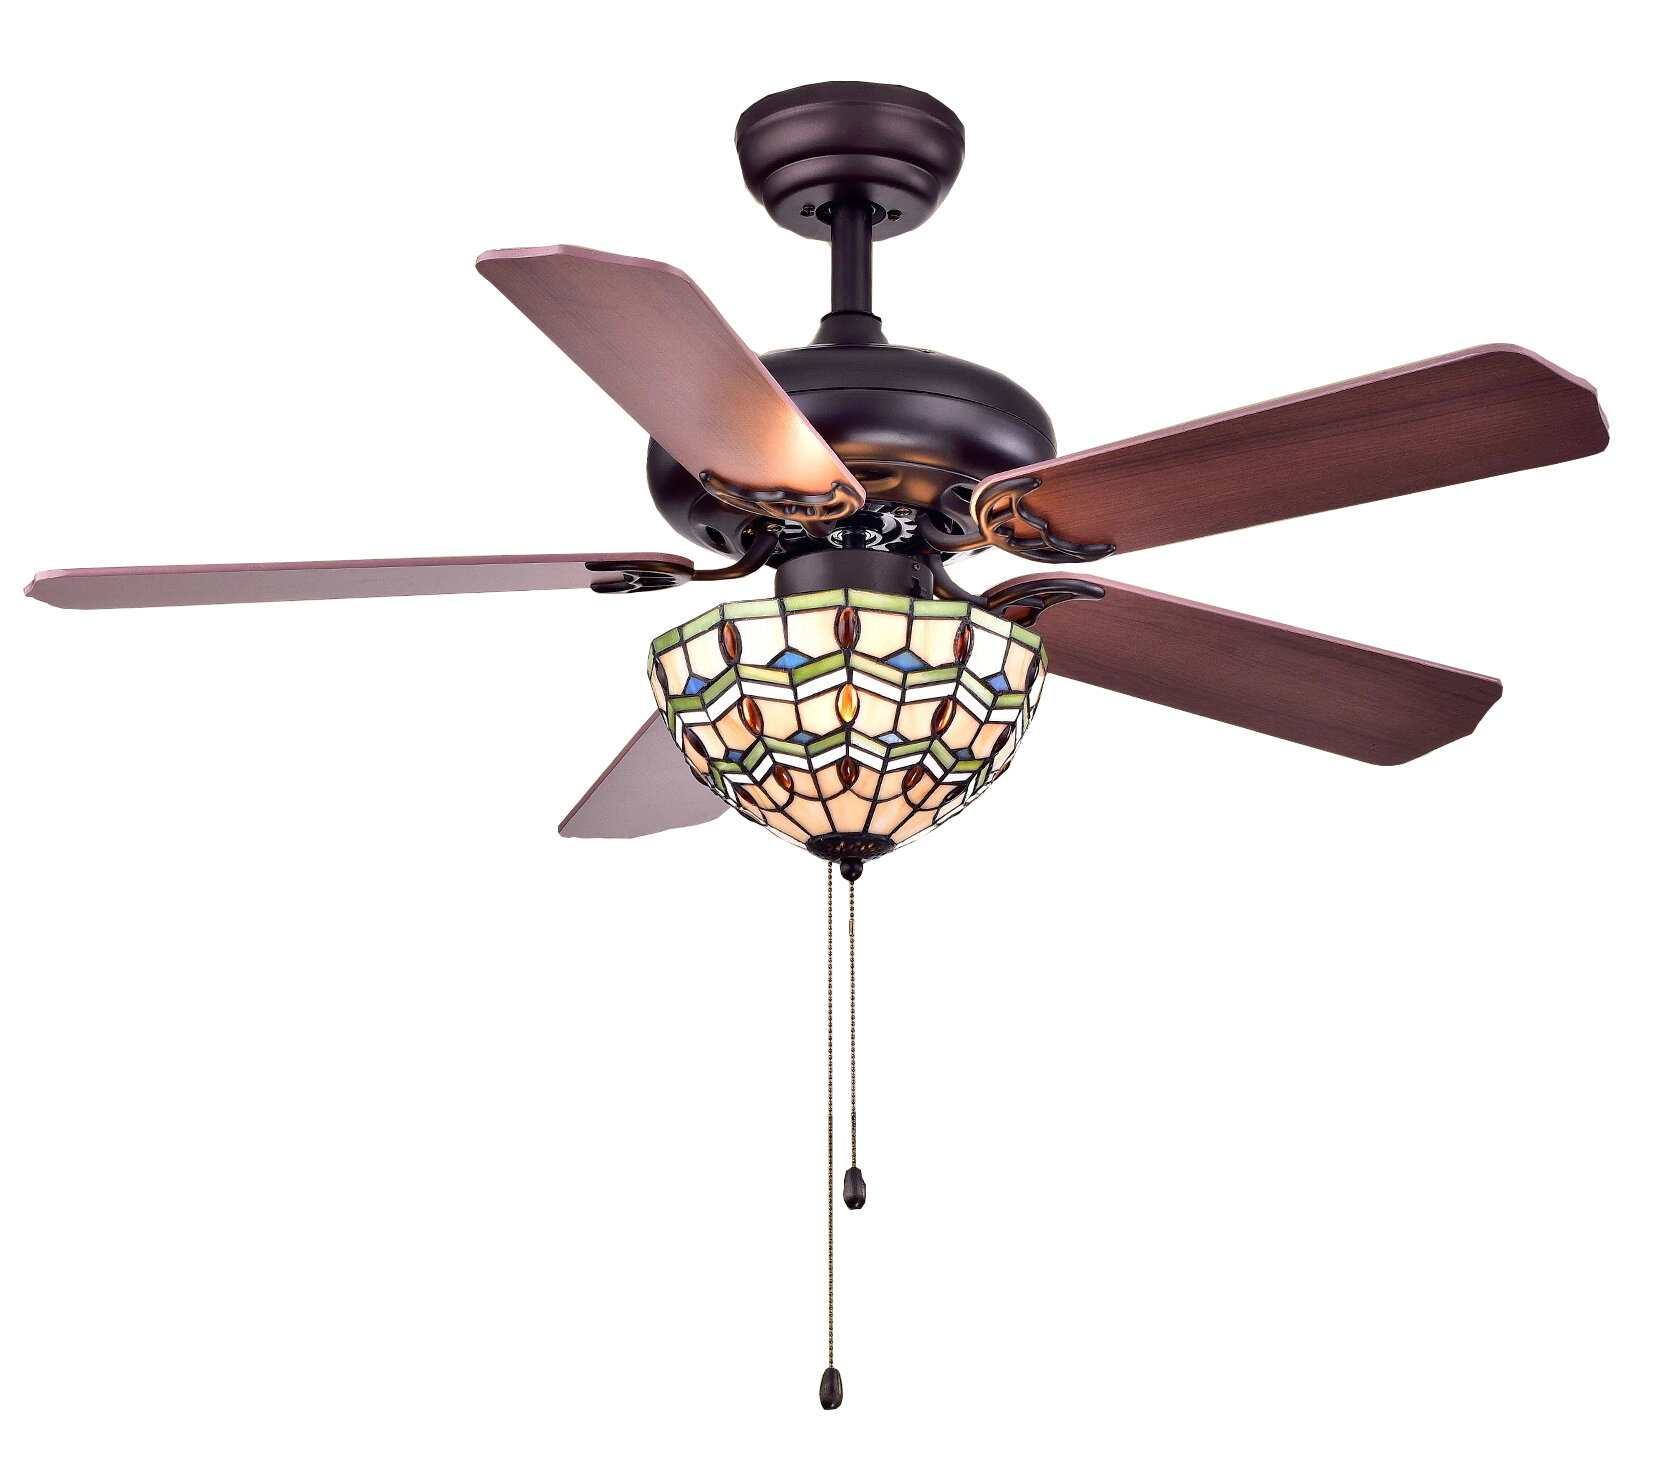 home blade tohva garden free black tiffany product light today style shipping ceiling overstock fan matte inch ivory